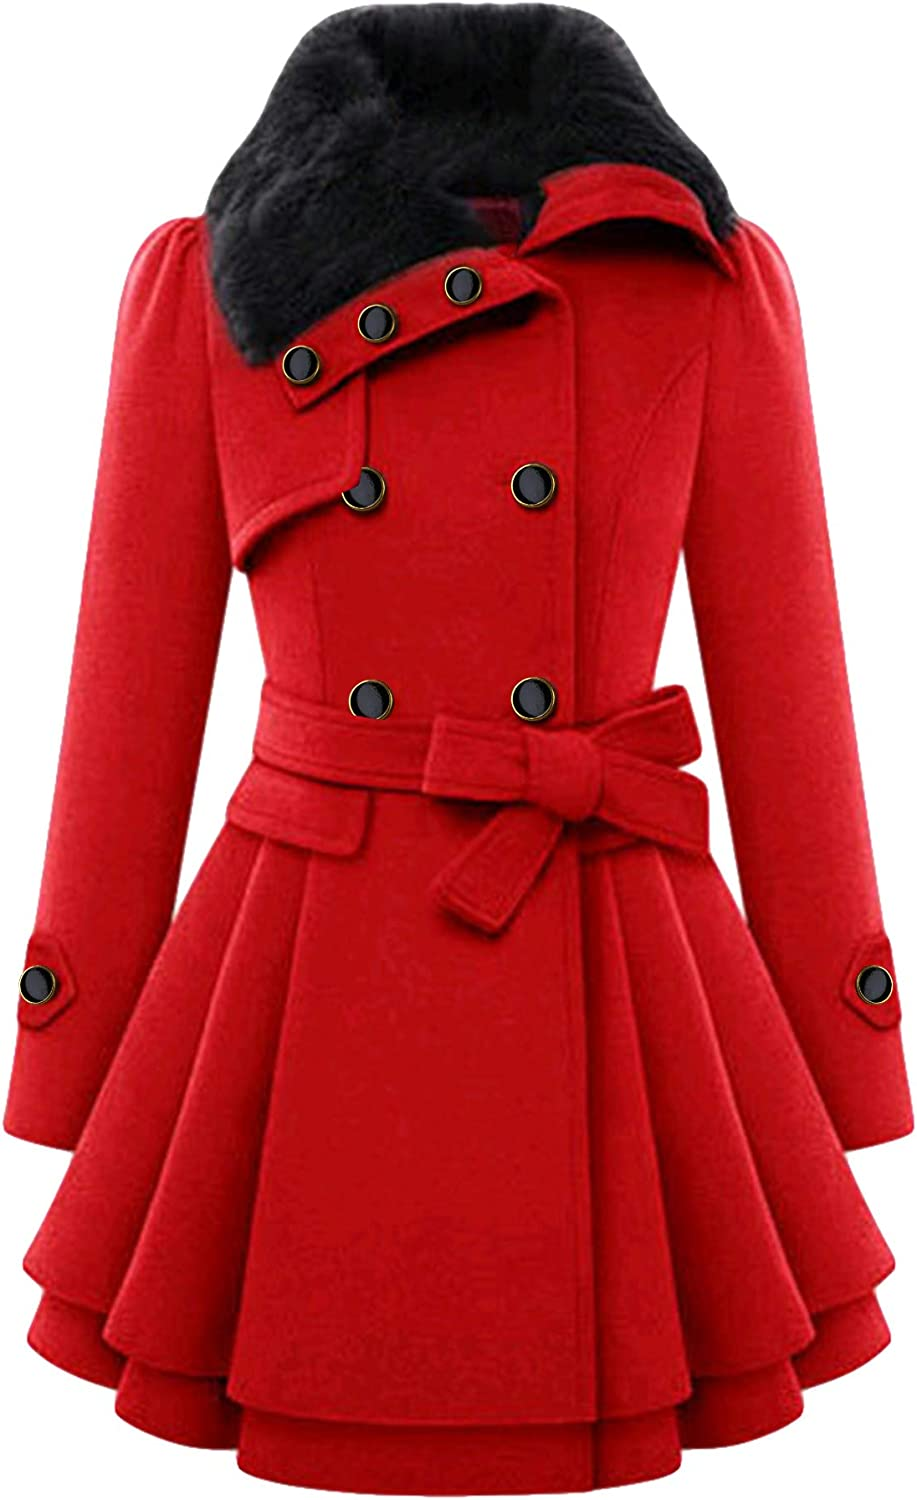 OMZIN Women's Winter Double Breasted Trench Coat Mid Length Hooded Outwear Jacket with Pockets